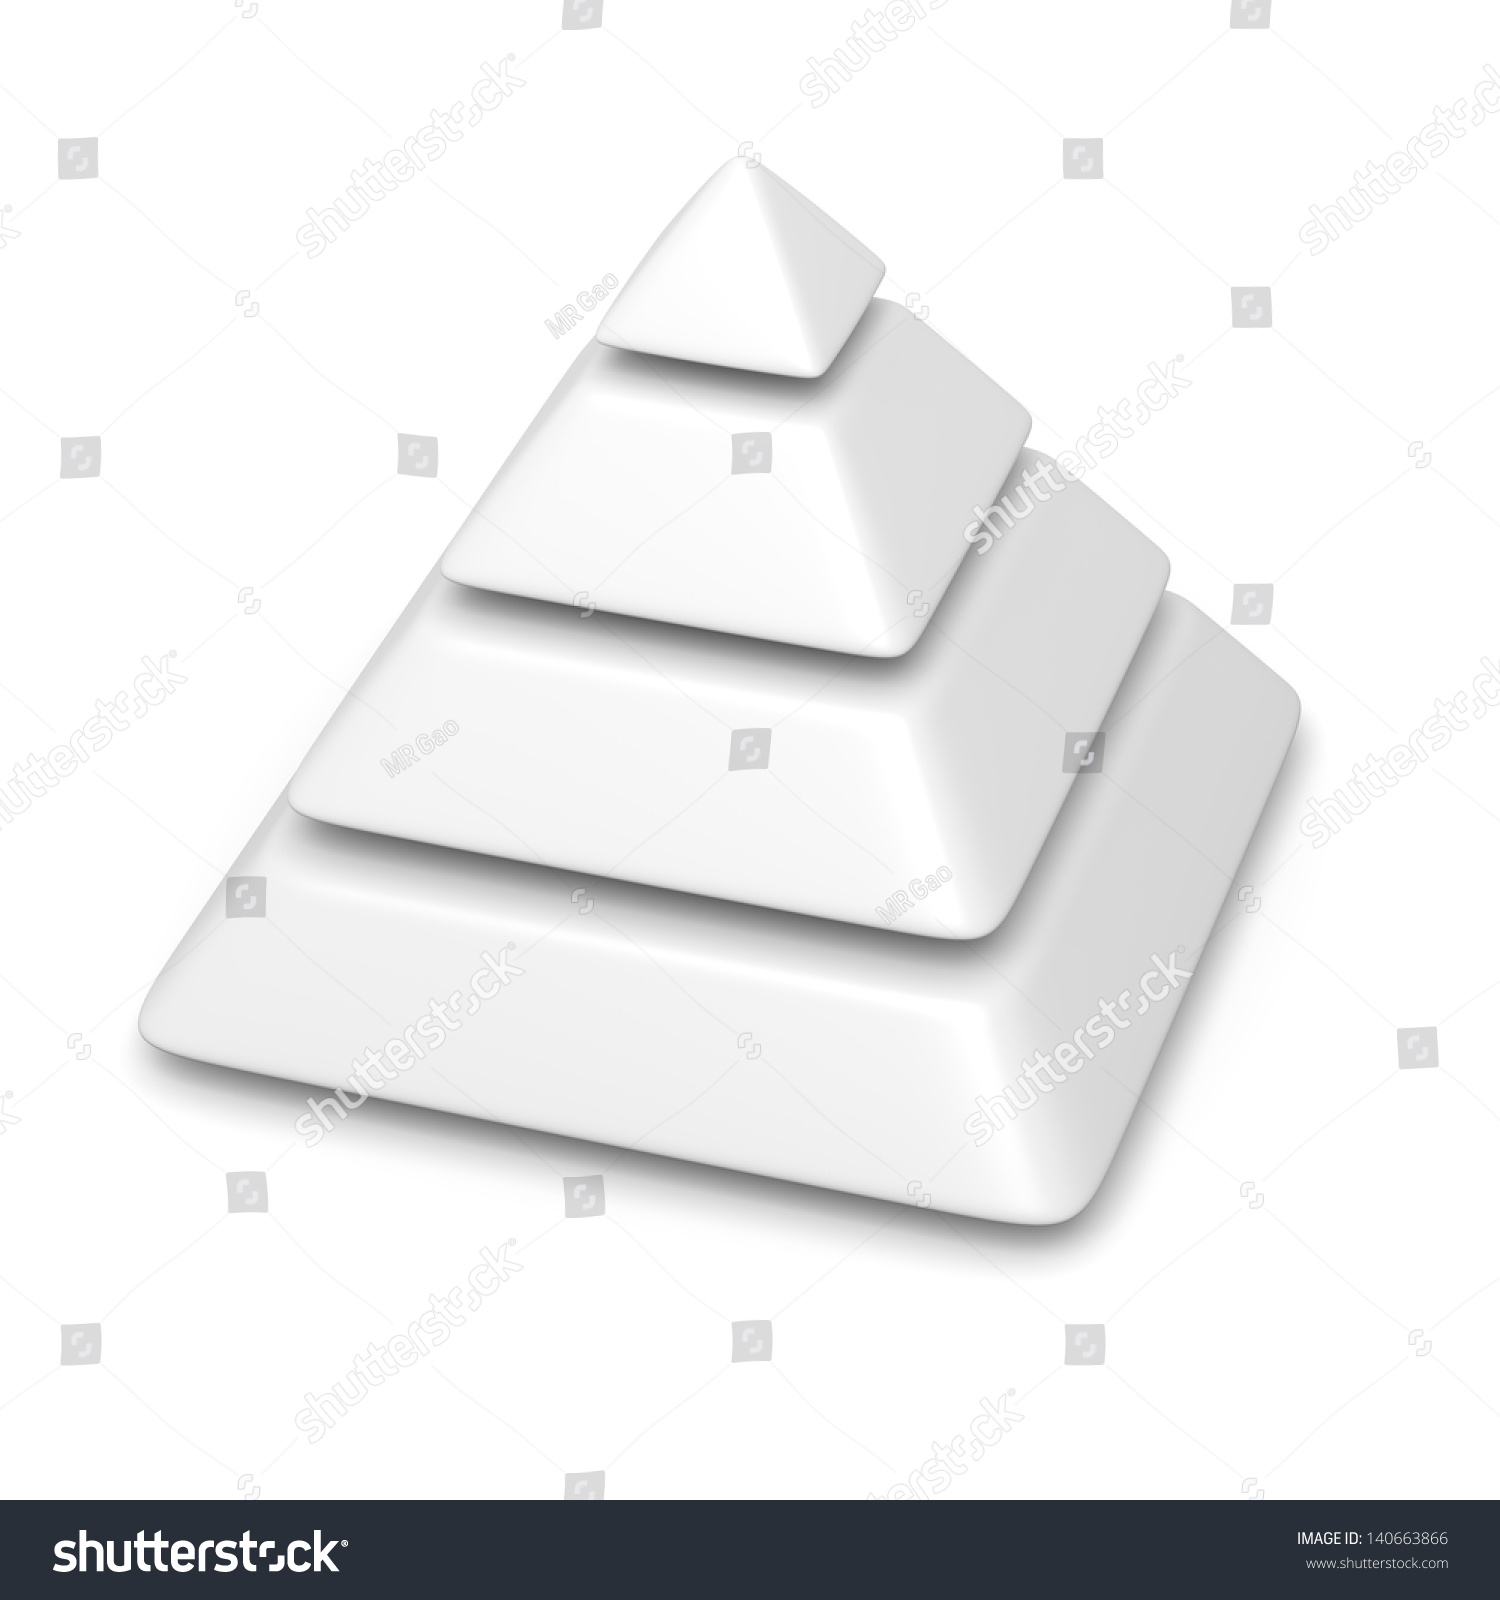 blank pyramid diagram 5 wiring for jeep grand cherokee white 4 levels stack stock illustration